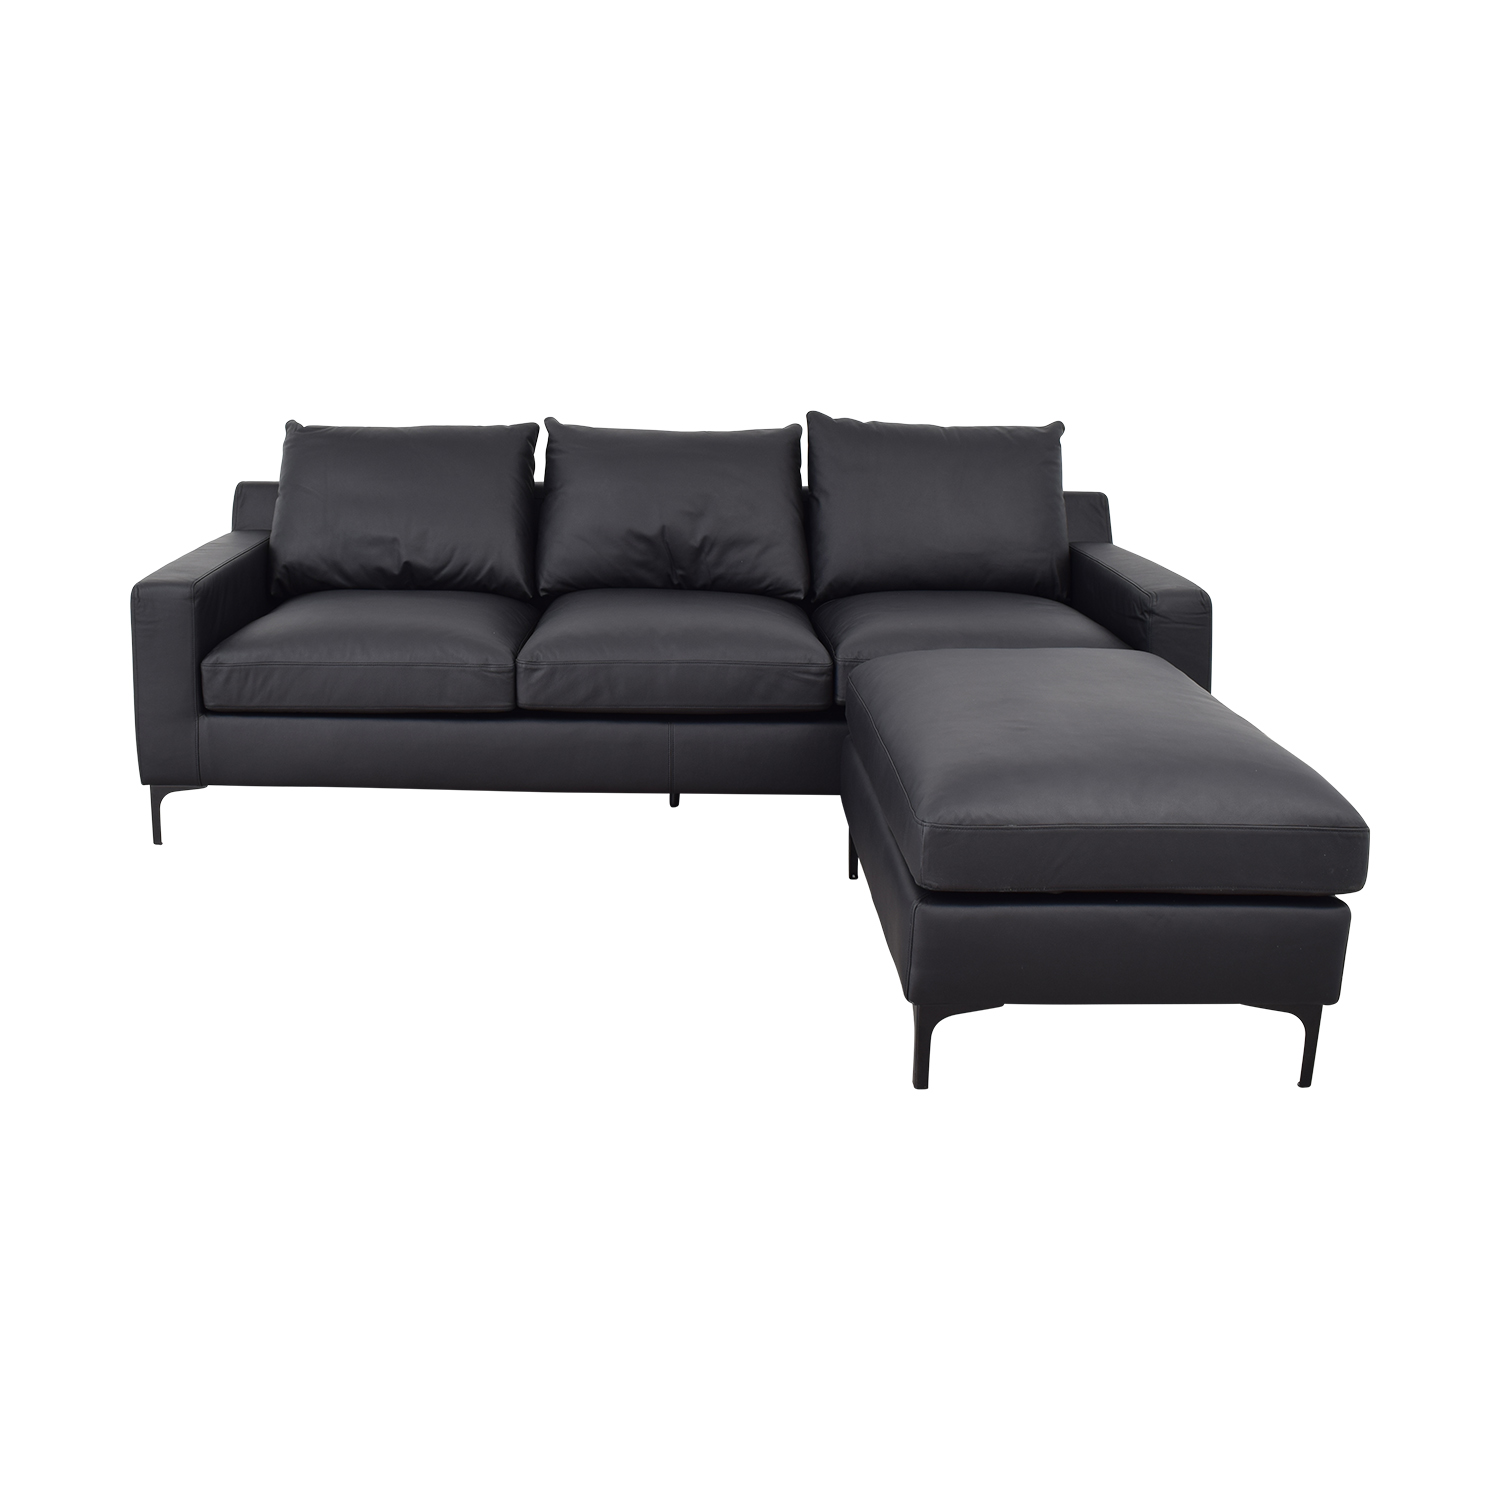 buy Interior Define Sloan Dark Gray Leather Three-Cushion Sofa with Ottoman online